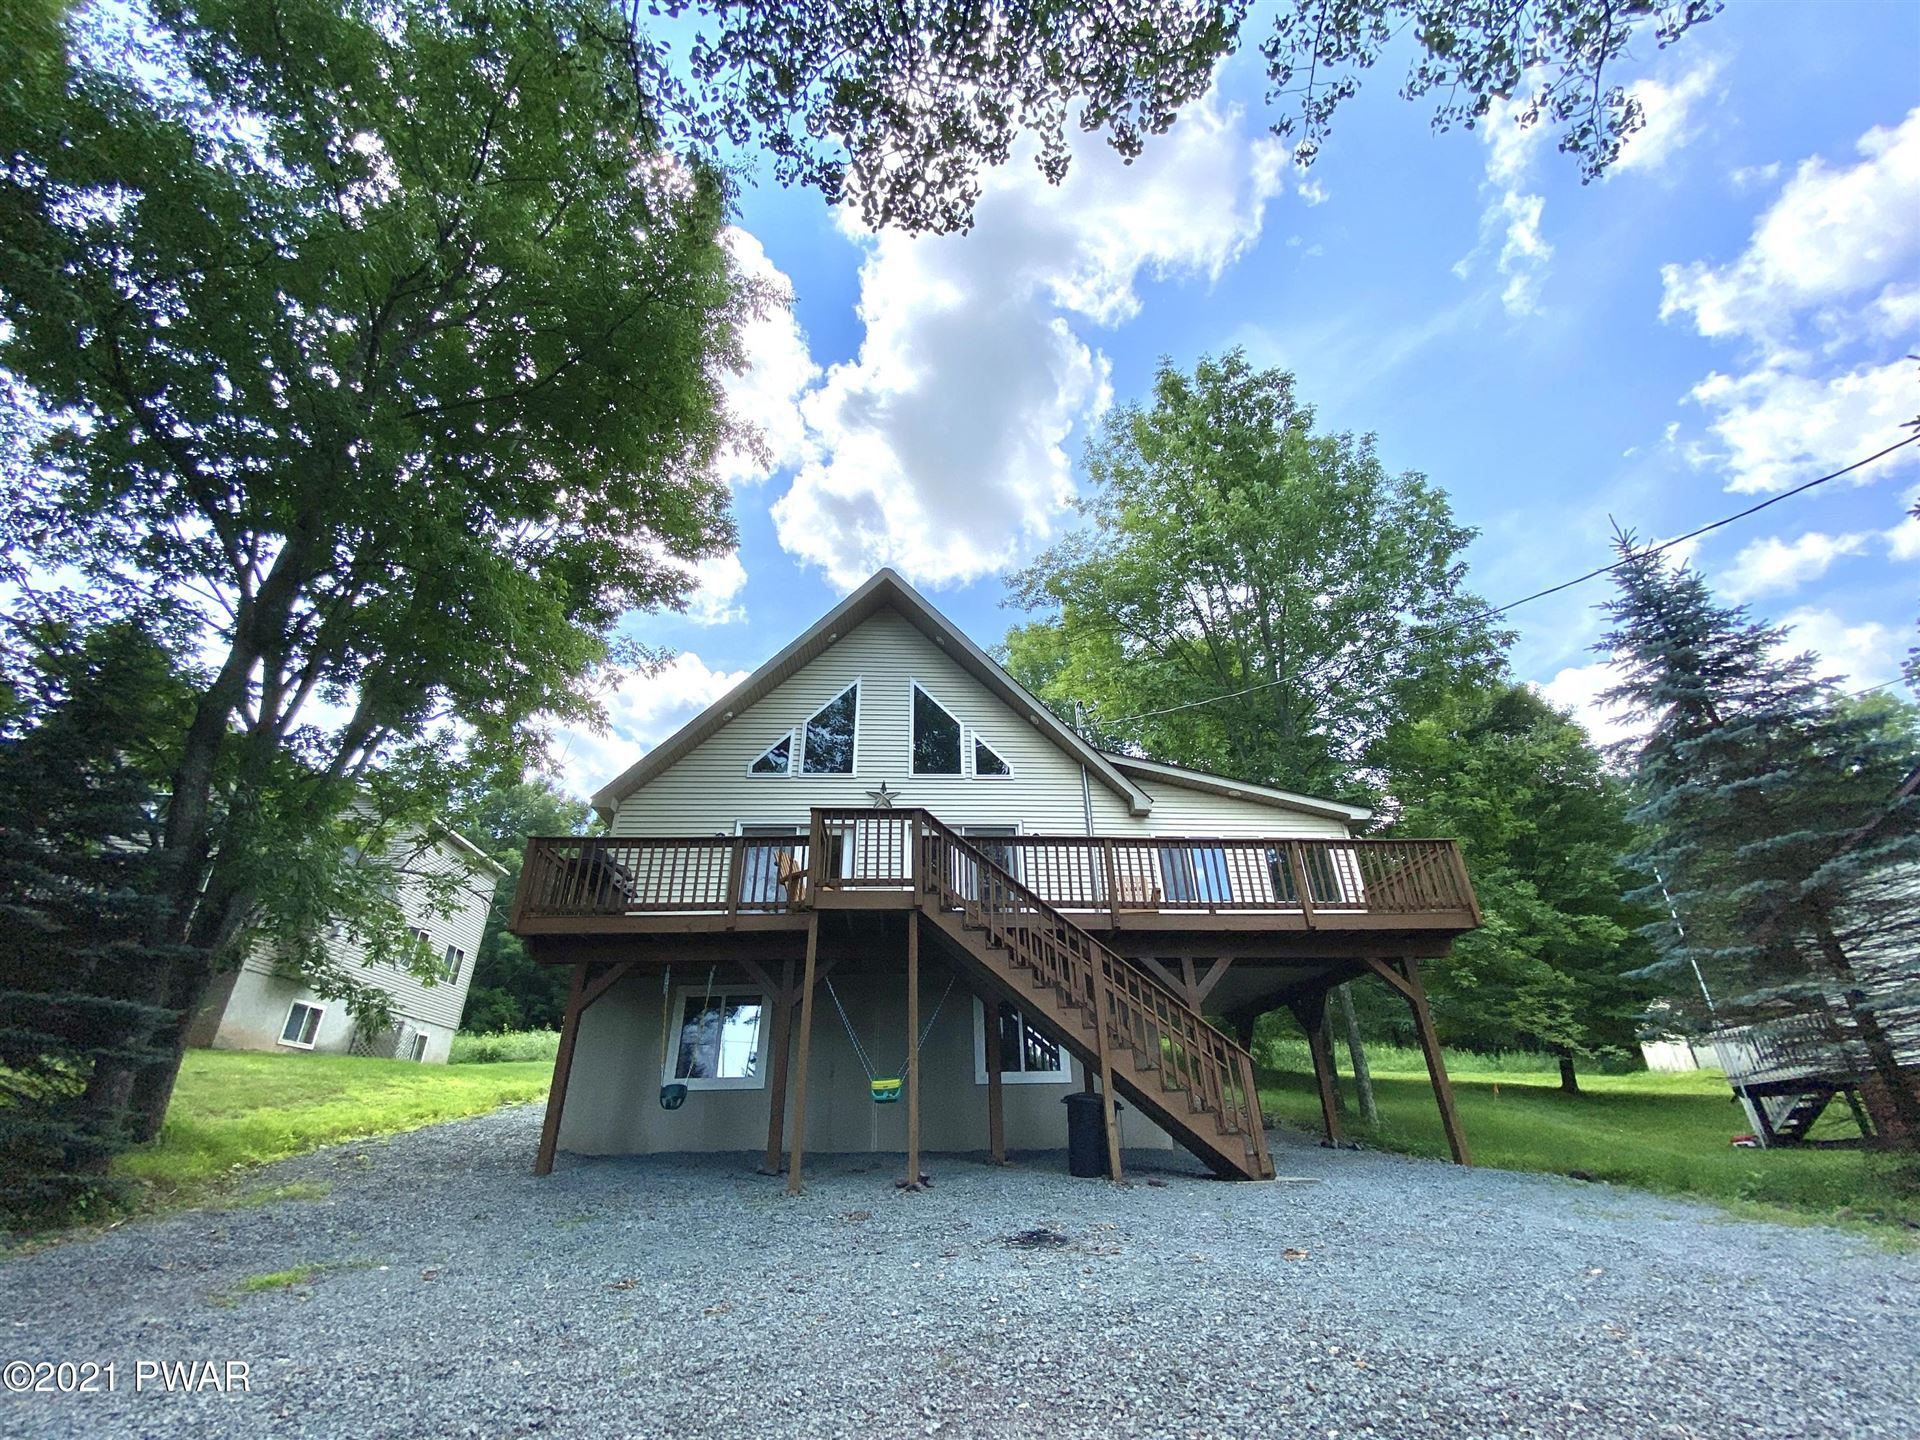 Photo of 983 Brentwood Dr, Lake Ariel, PA 18436 (MLS # 21-2947)